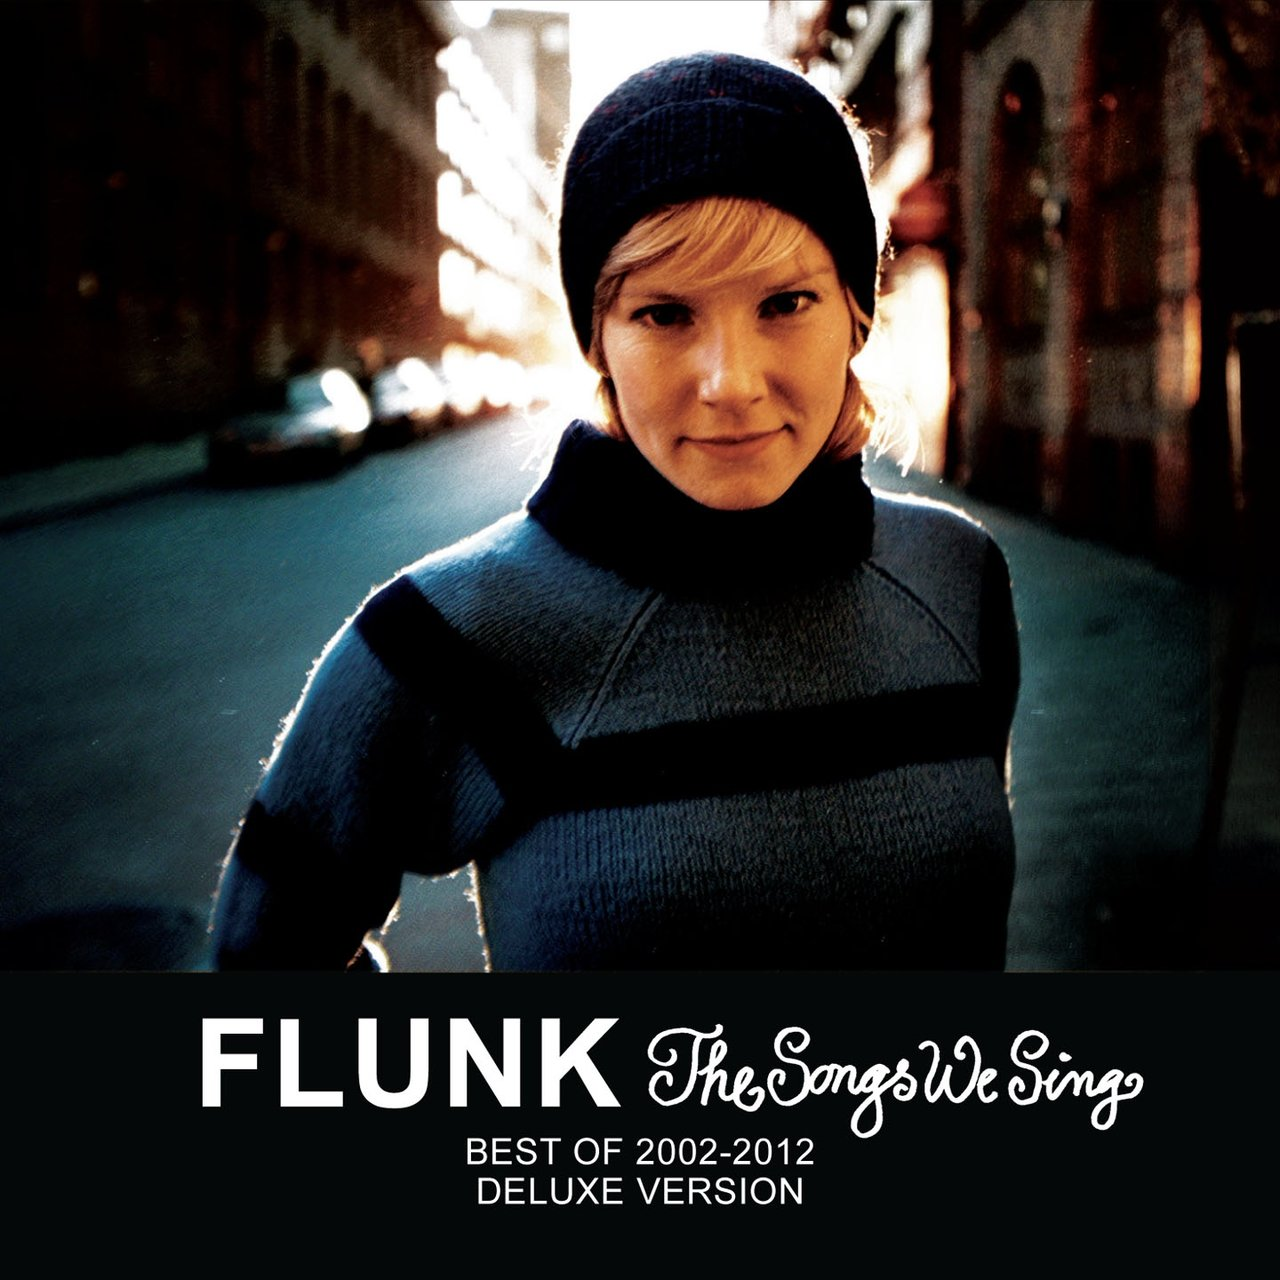 The Songs We Sing - Best of 2002-2012 - Deluxe Version